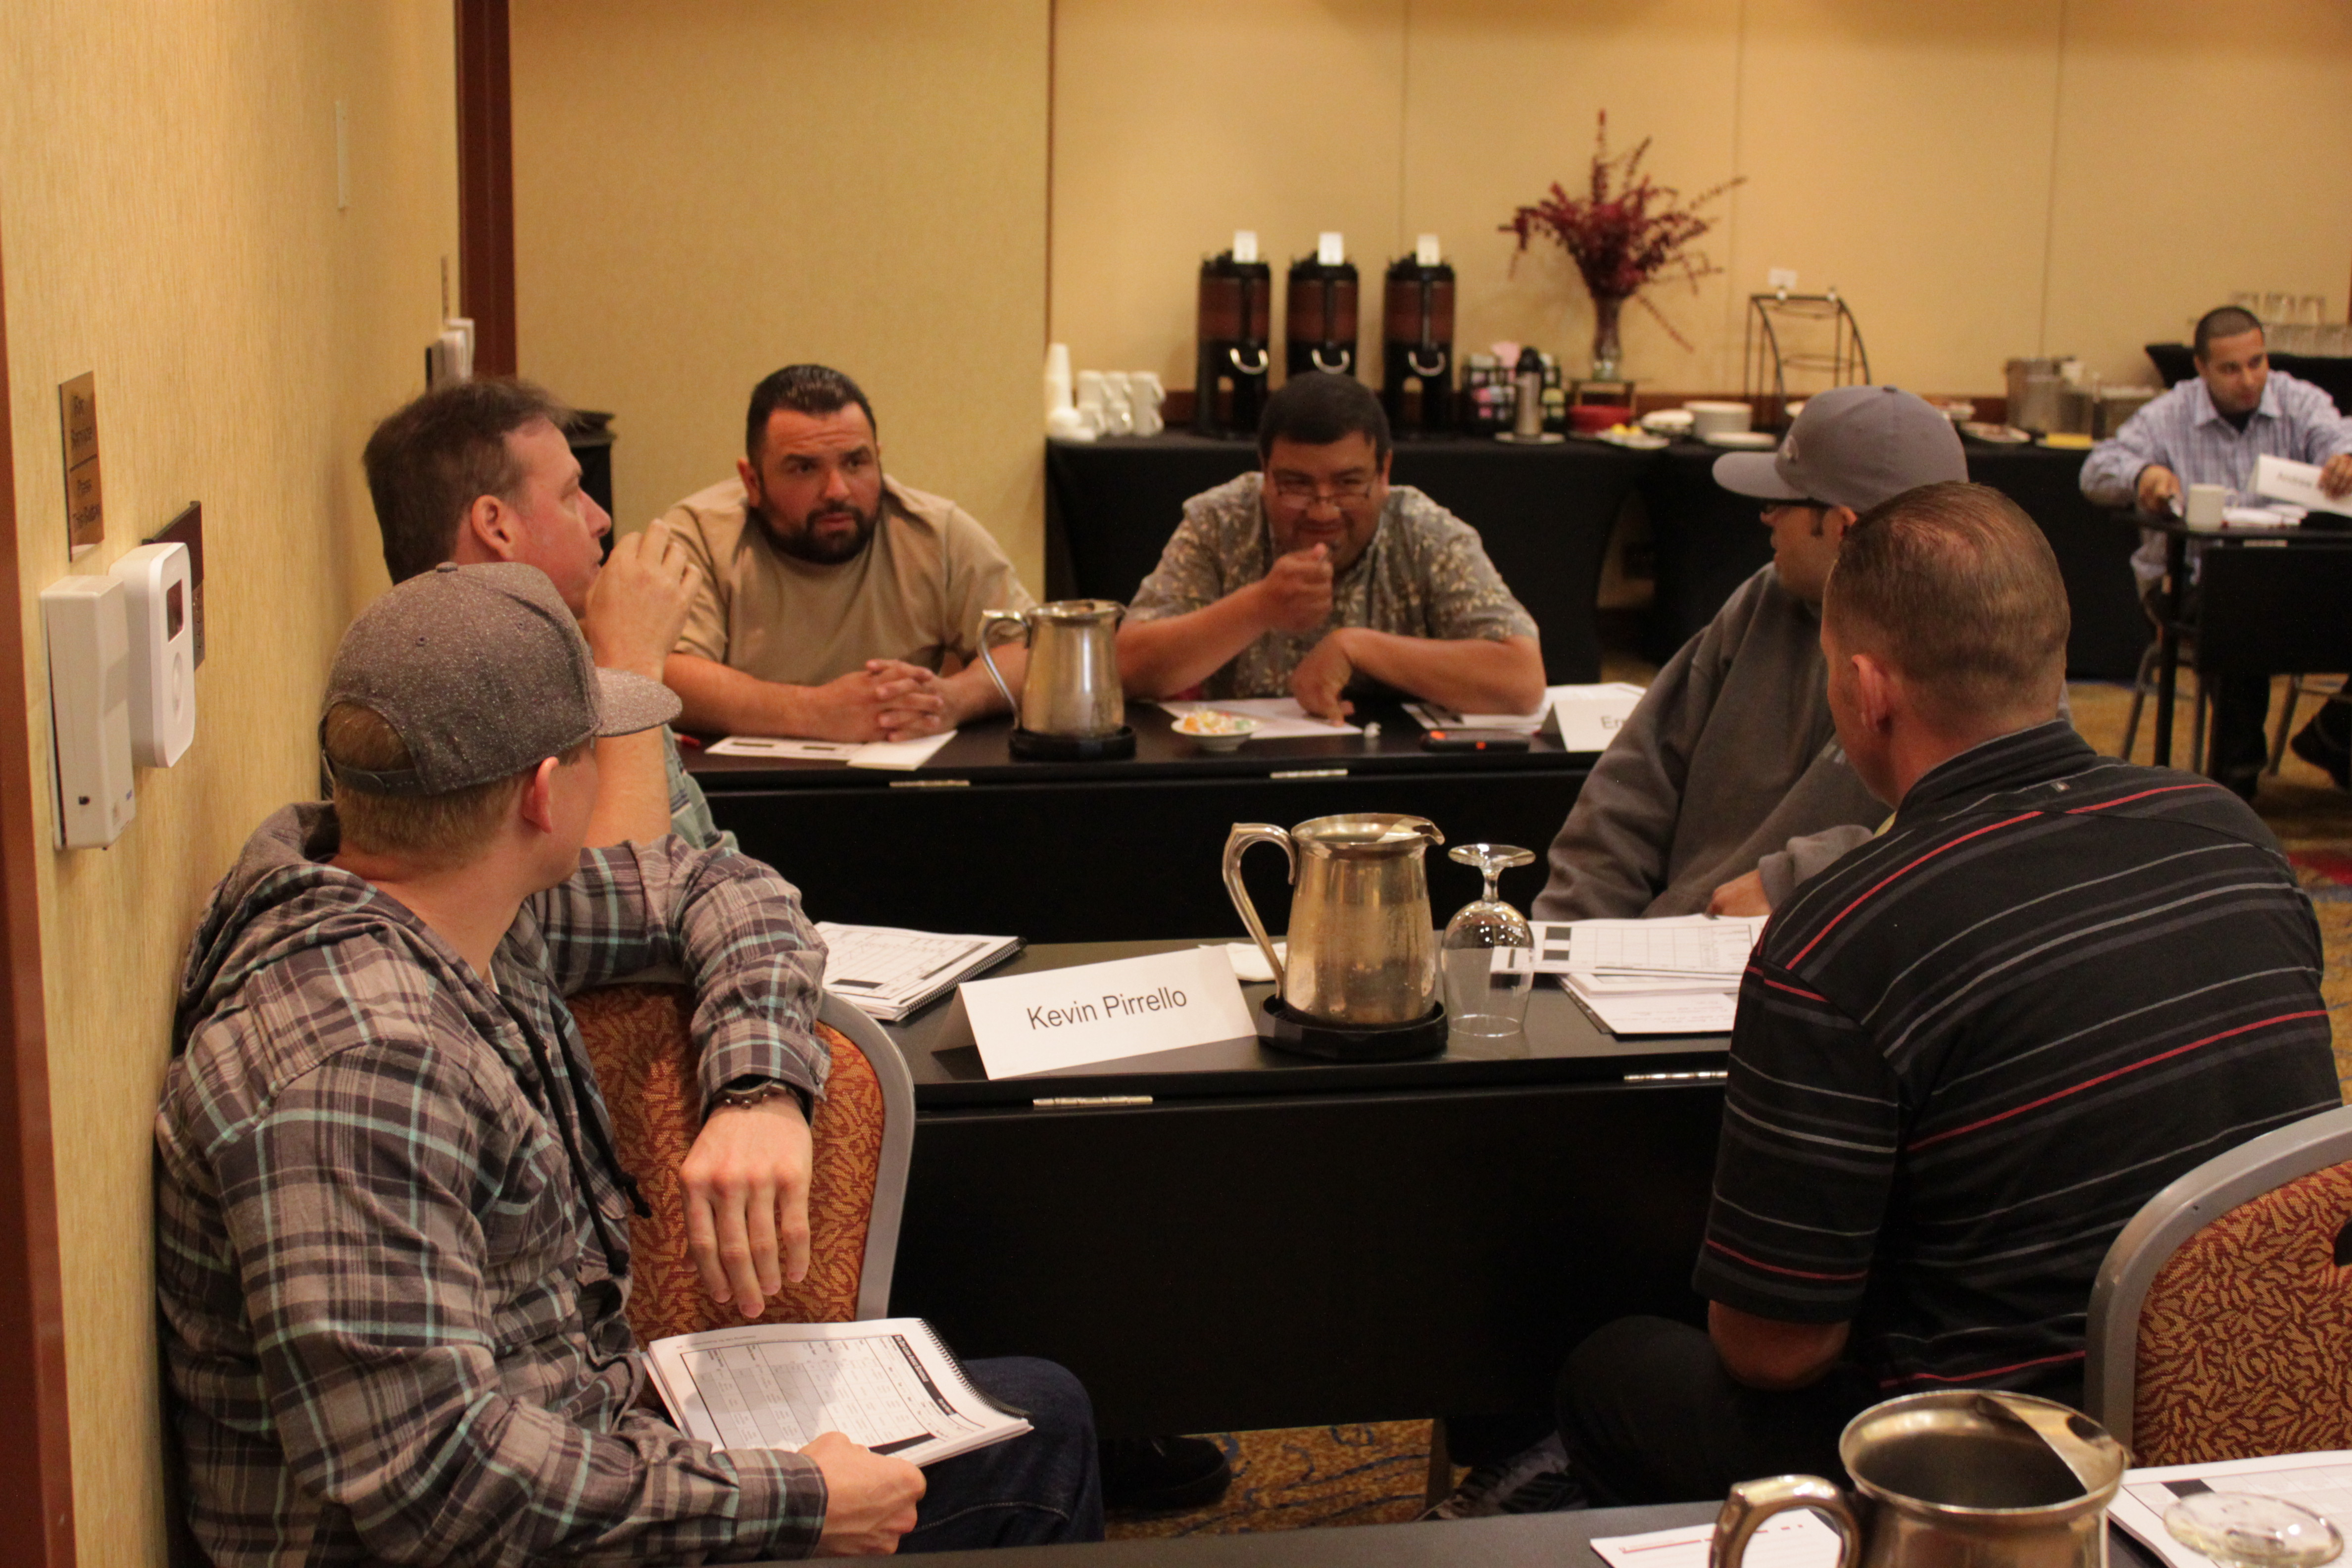 education events on 15 advancing beyond journeyman becoming a professional supervisor jim bain